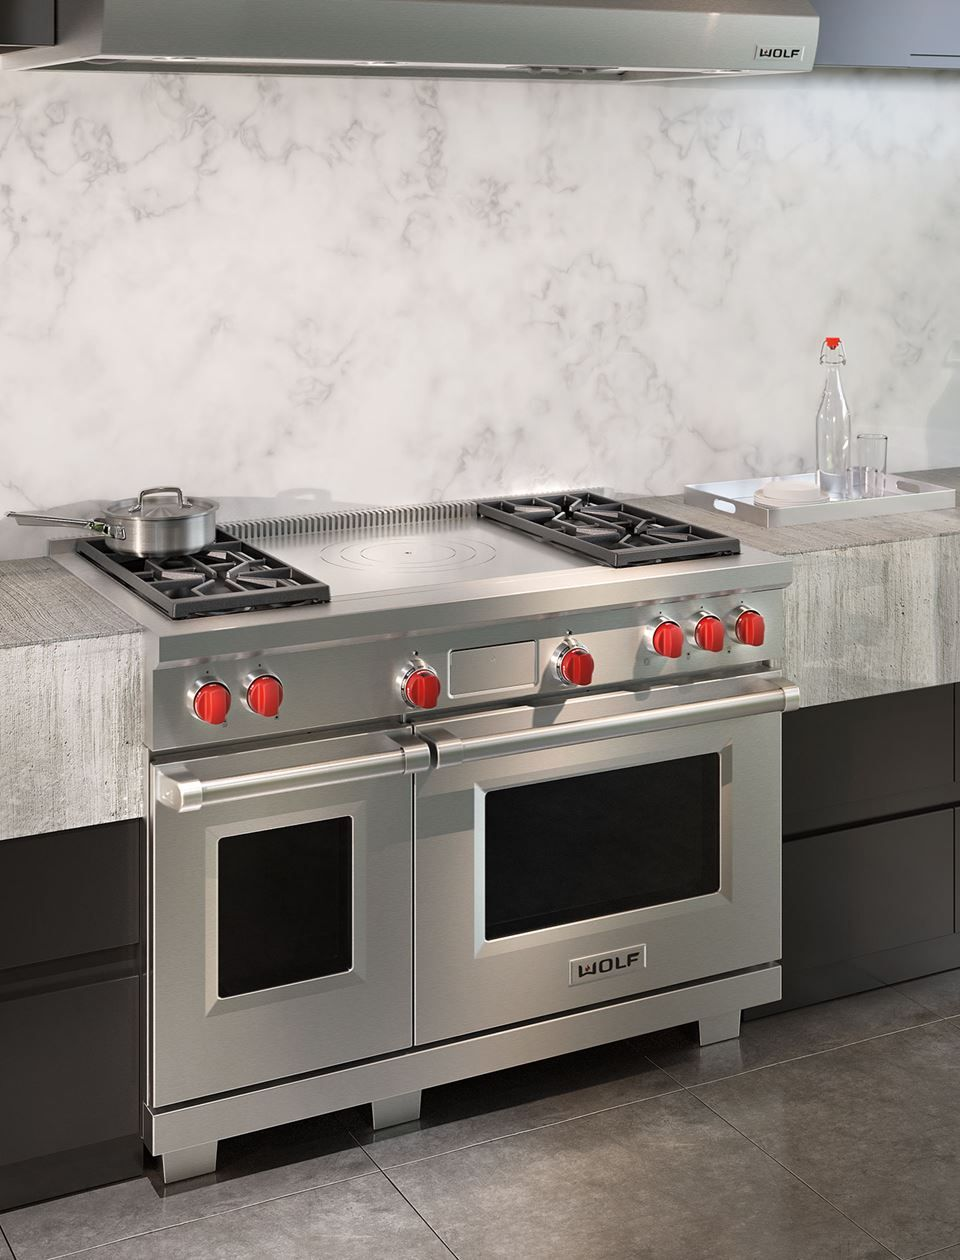 48 Dual Fuel Range 4 Burners And French Top French Top Kitchen Style Dual Fuel Ranges